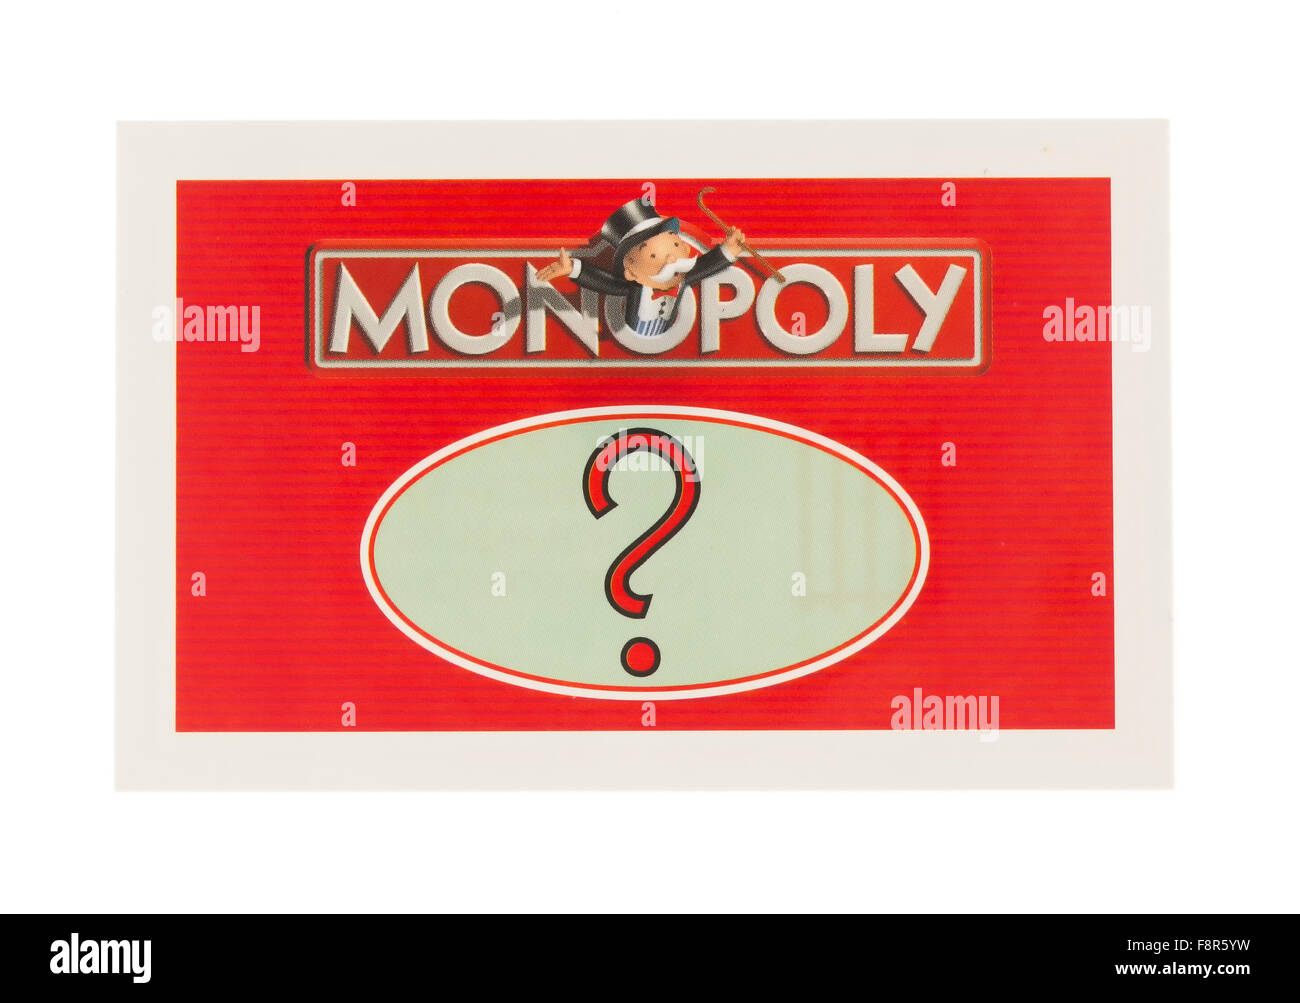 English Edition of Monopoly showing A Chance Card,  The classic trading game from Parker Brothers - Stock Image